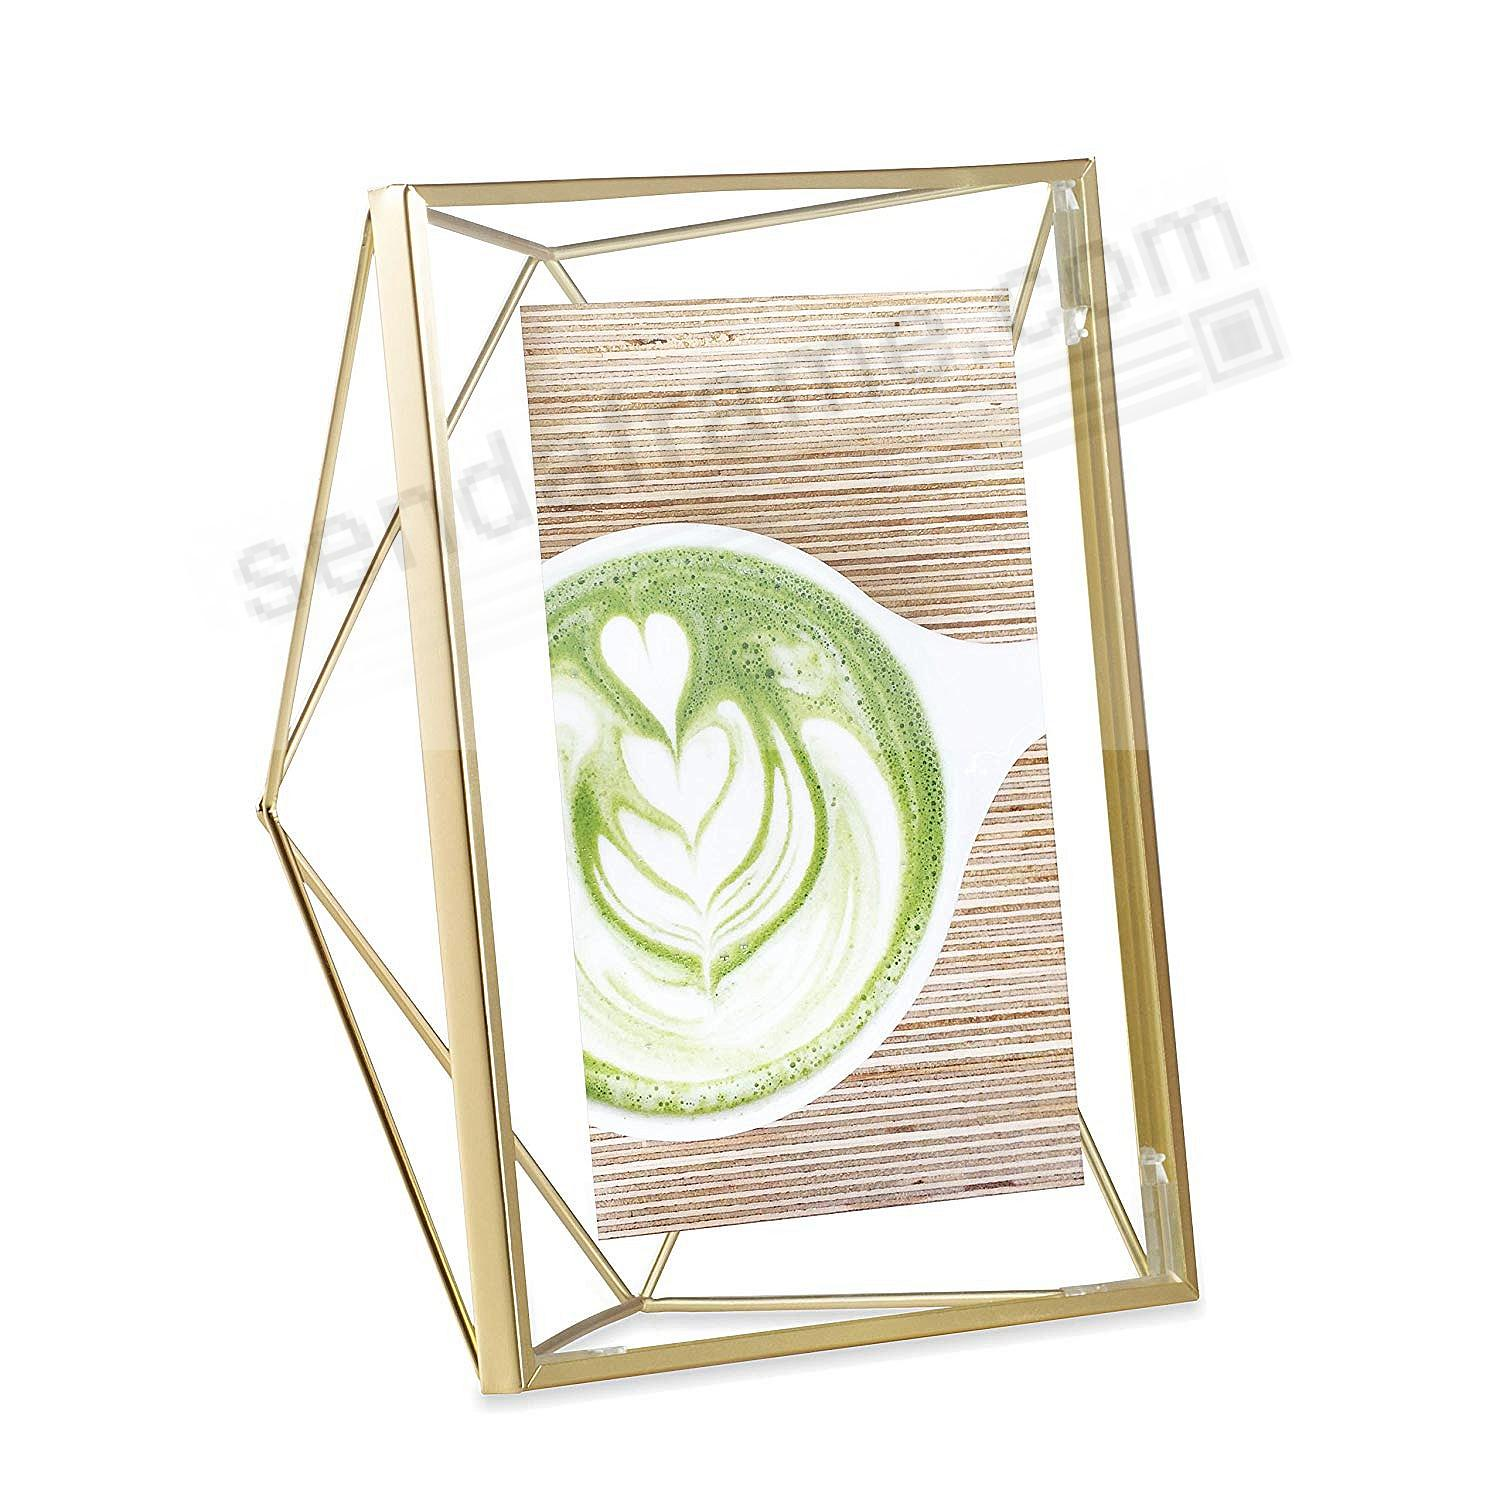 the original prisma photo display brass wire 5x7 frame by umbra